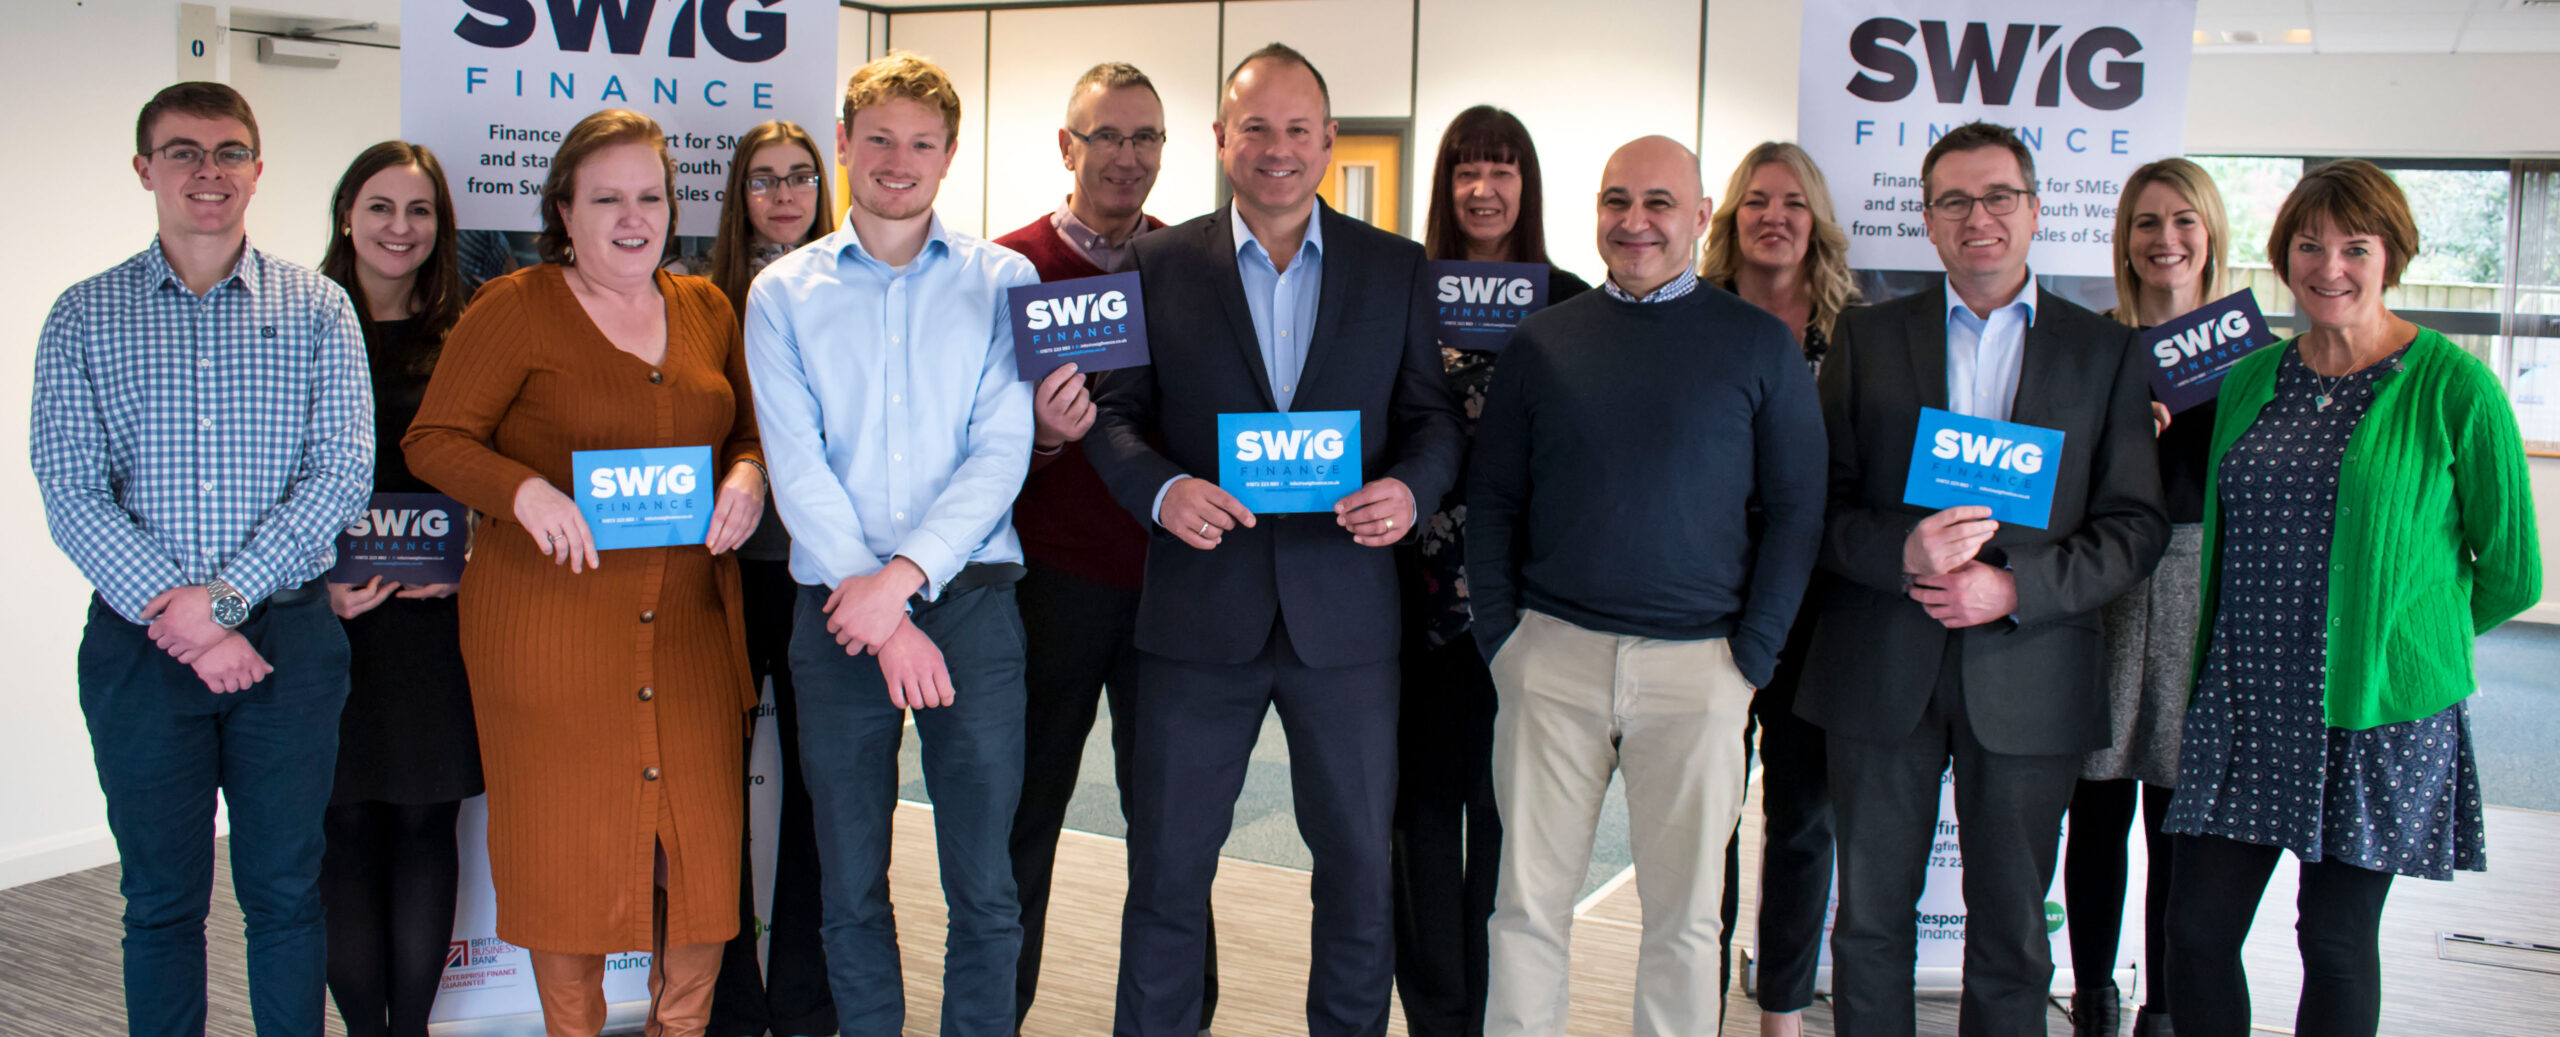 SWIG Finance Goes Live with the Recovery Loan Scheme!